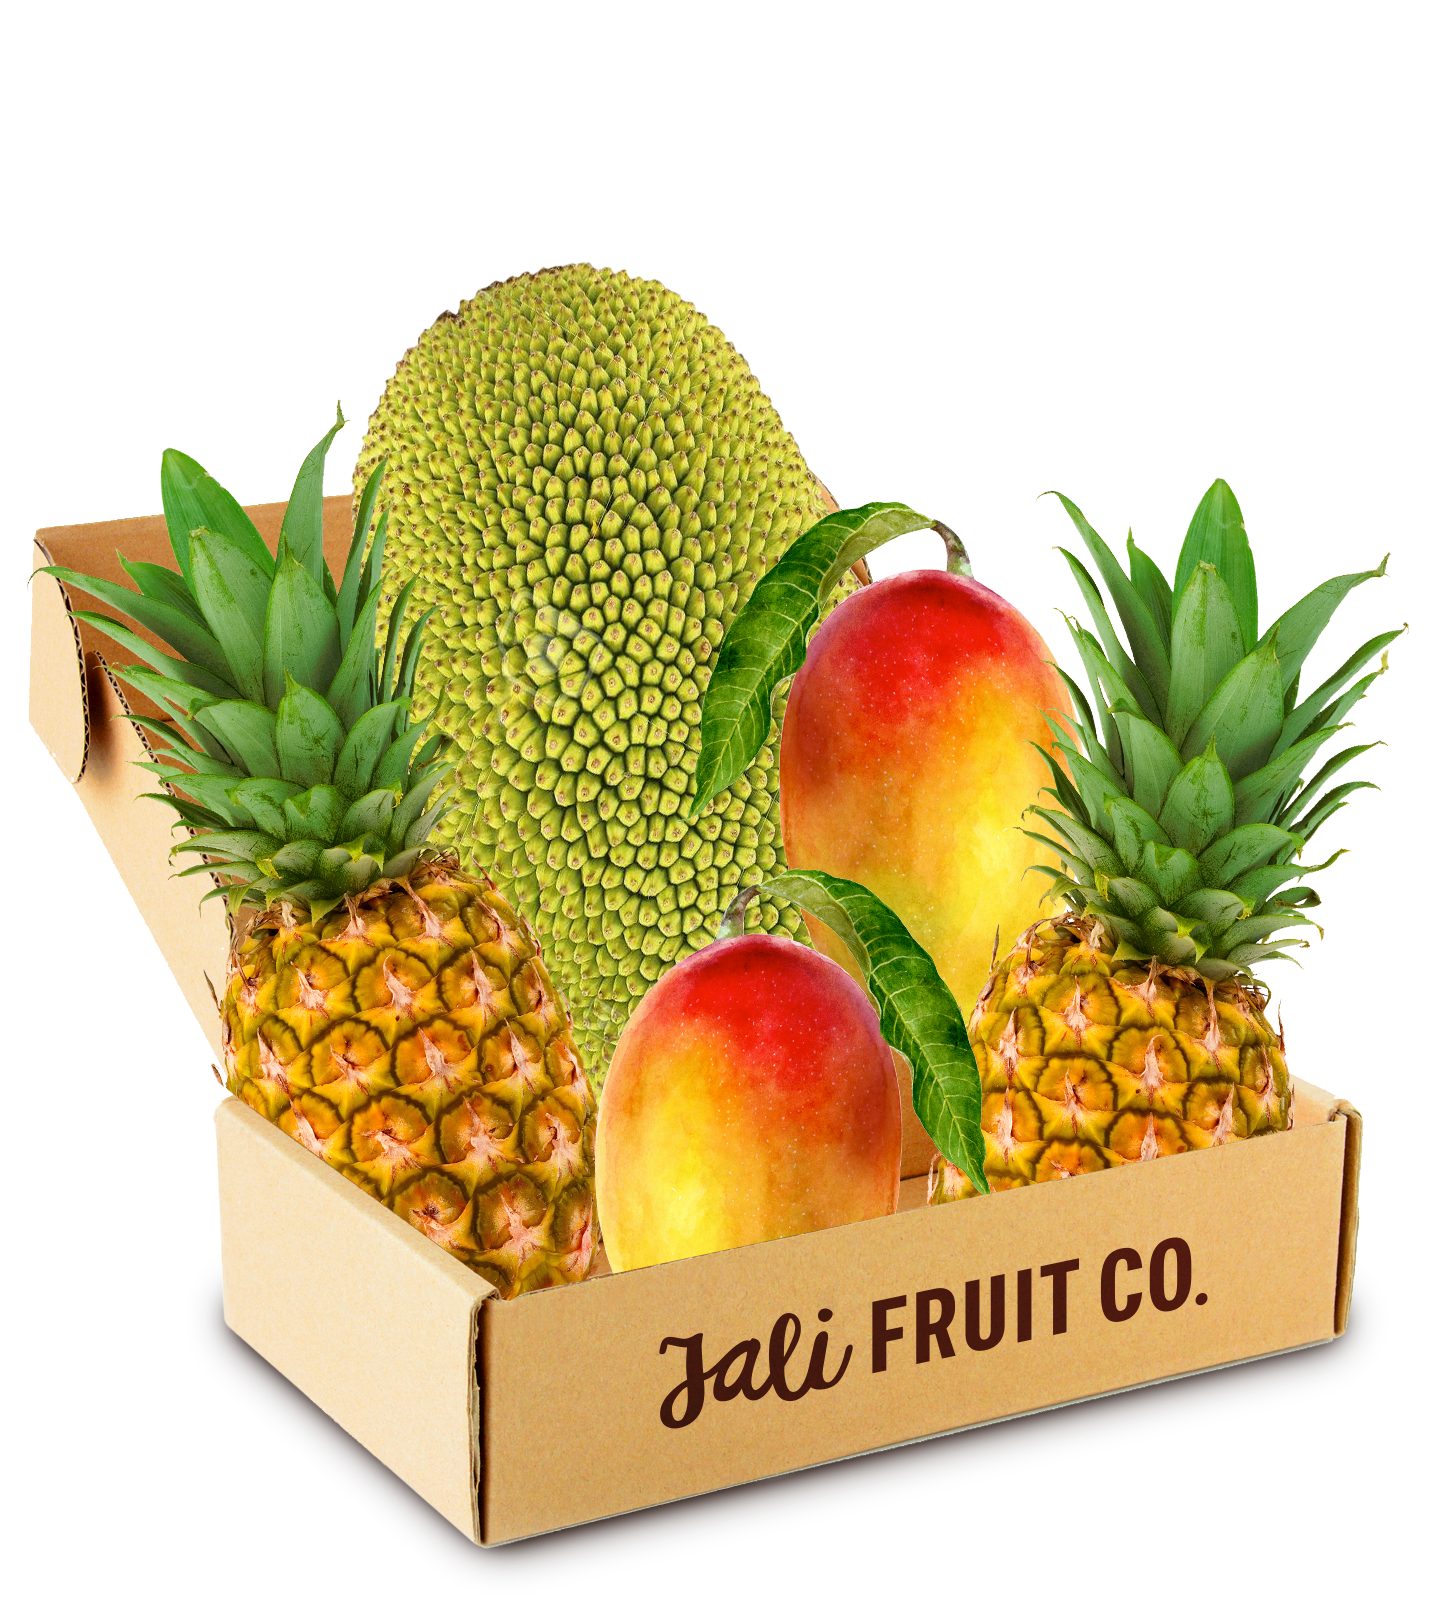 5-Pack The Jali Fruit Co.